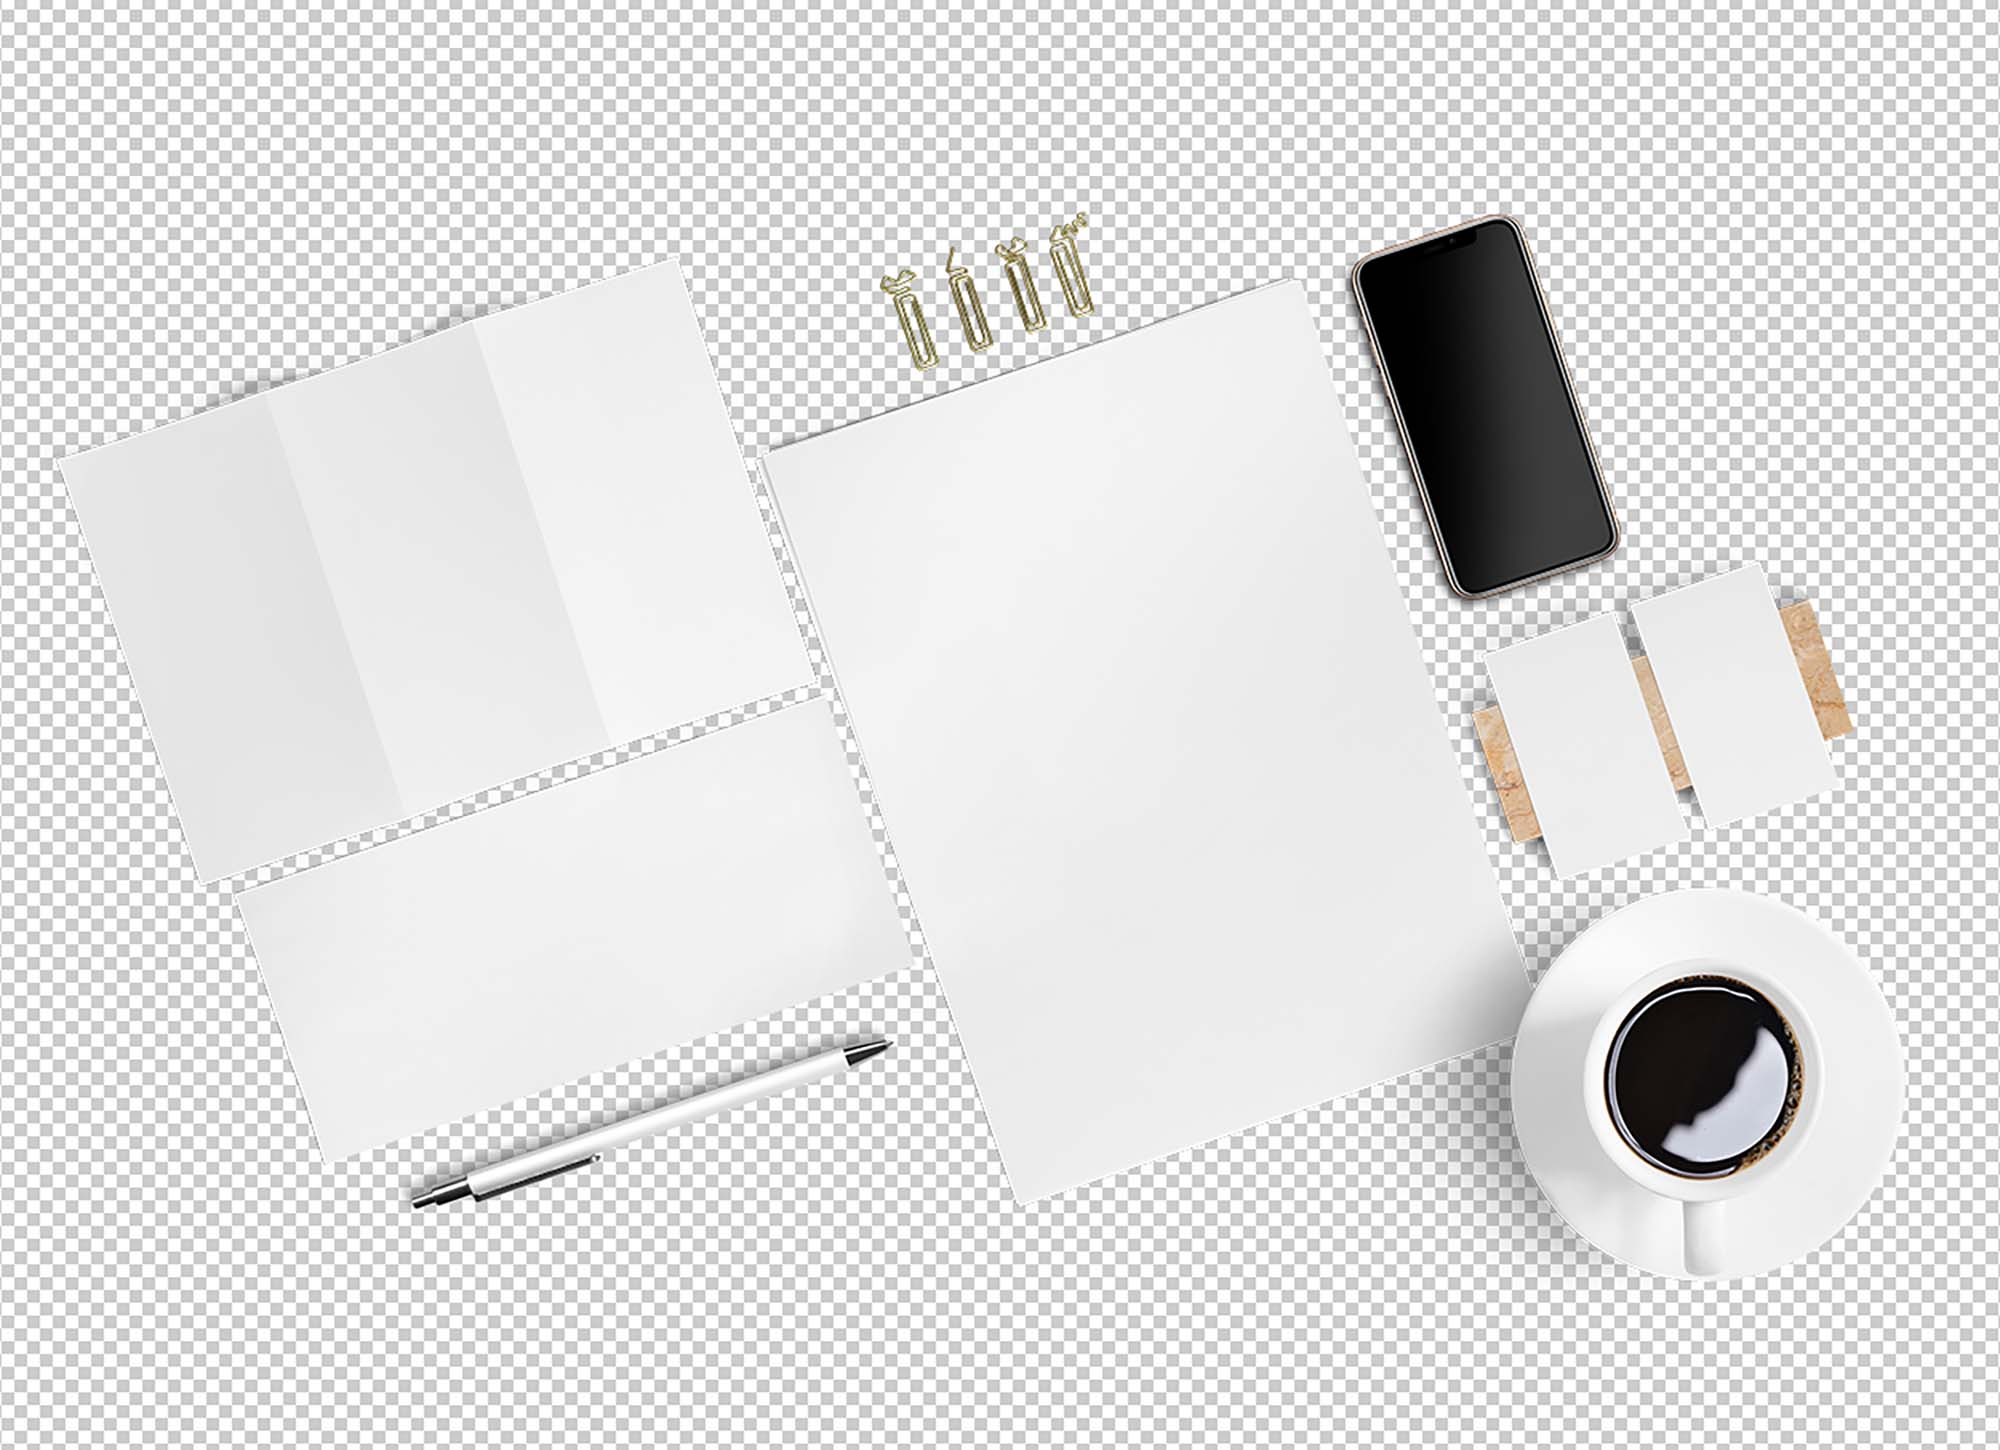 Bird's-eye View Stationery Mockup 2